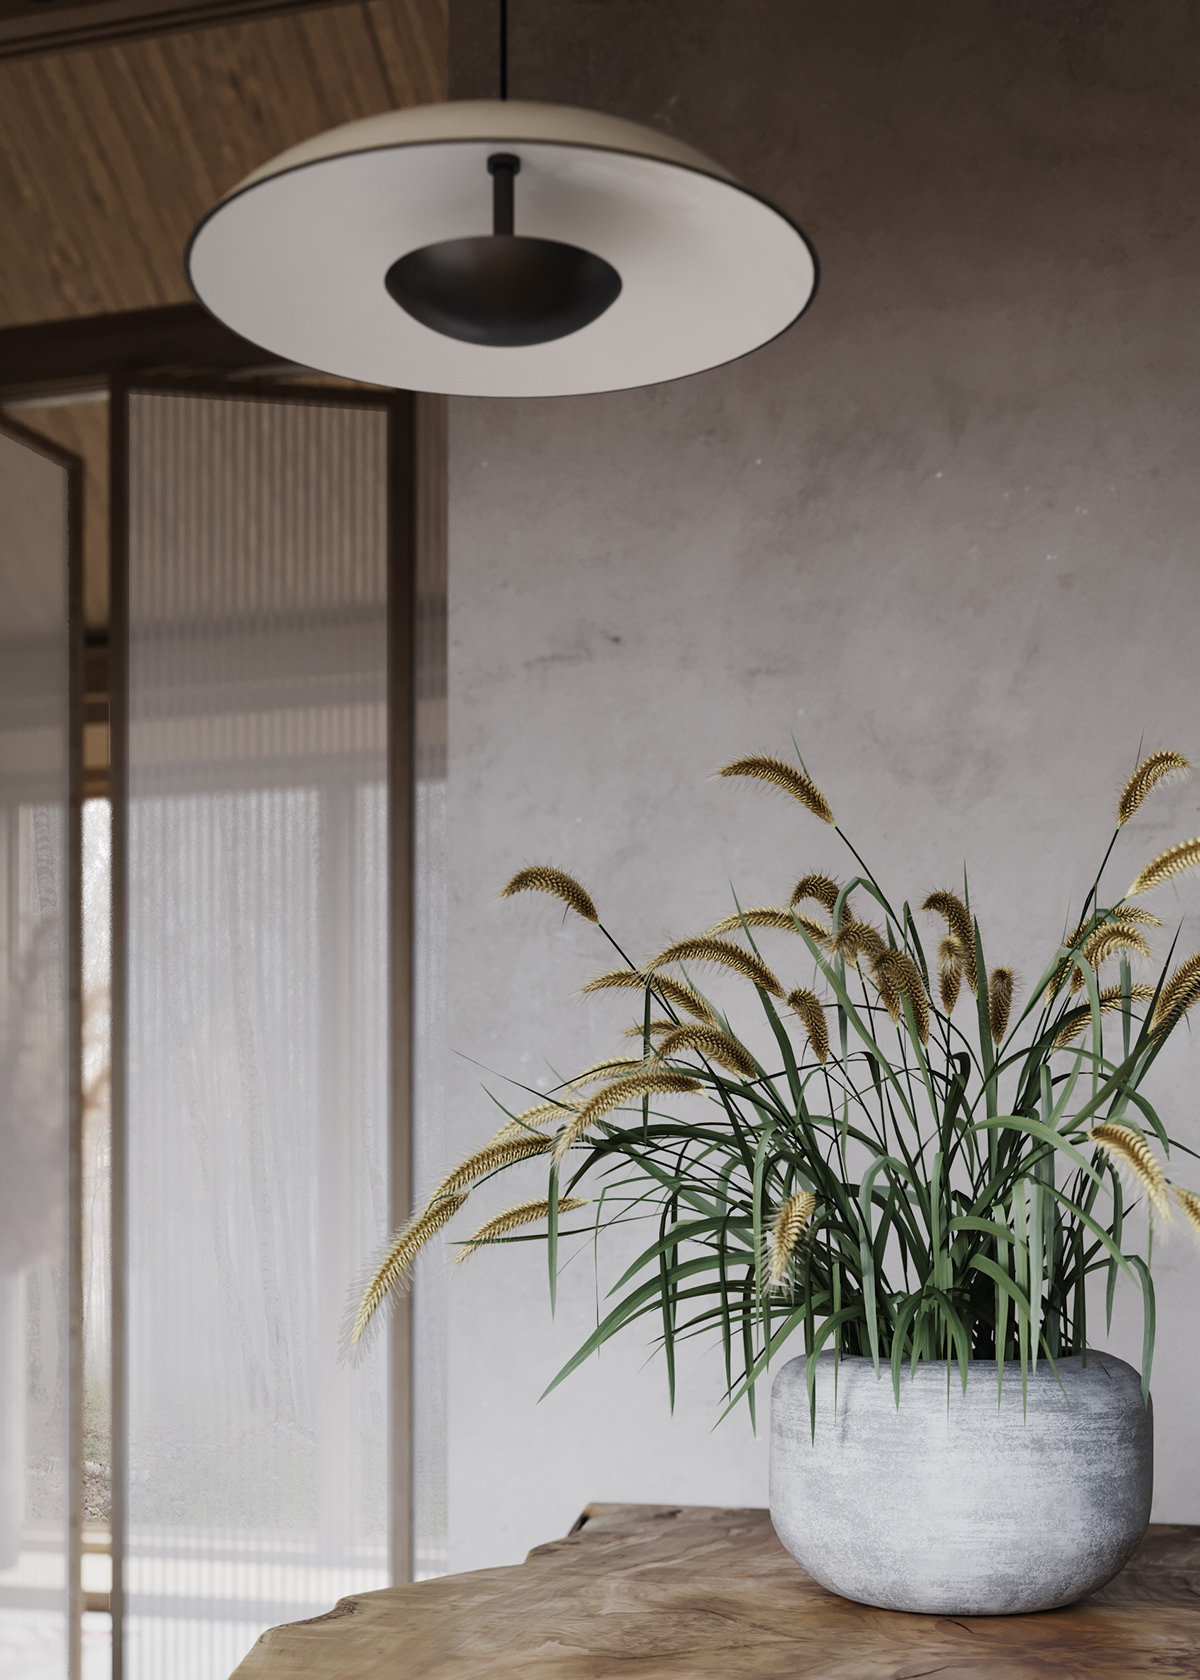 nature in the home - grasses in a vase